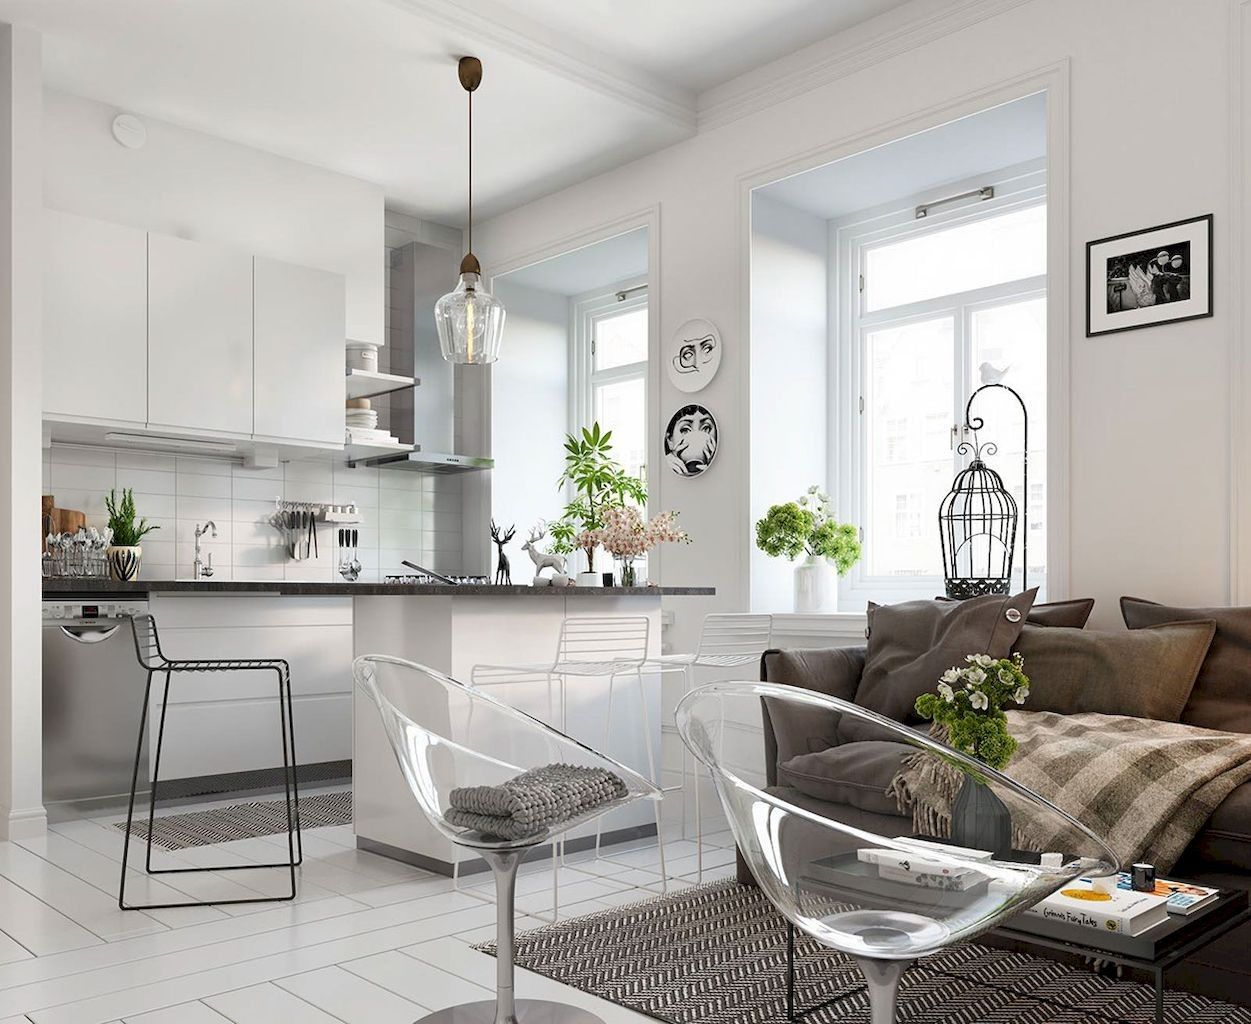 60 Awesome Scandinavian Style Apartment Decor Ideas In 2020 Small Apartment Design Scandinavian Design Bedroom Scandinavian Living Room Small